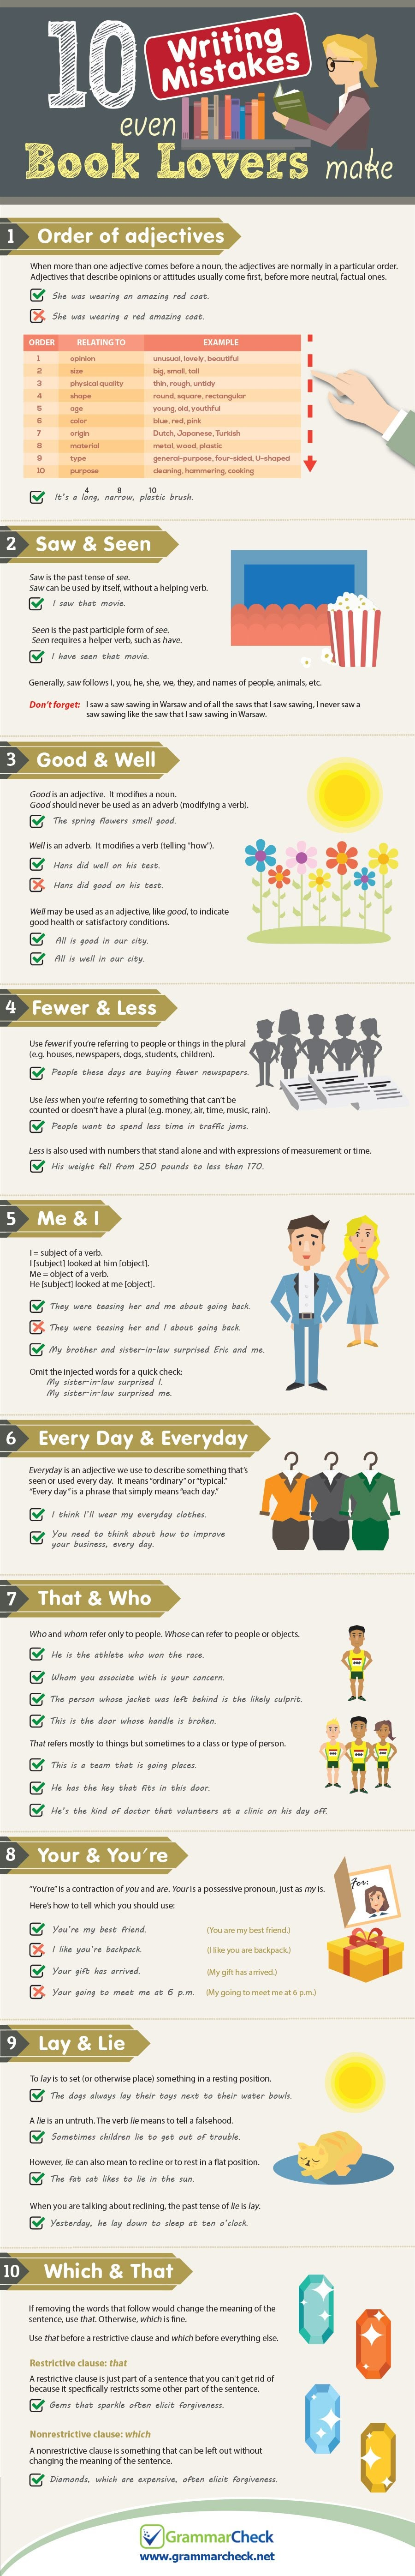 10 Writing Mistakes That Make You Look Unprofessional (Infographic)